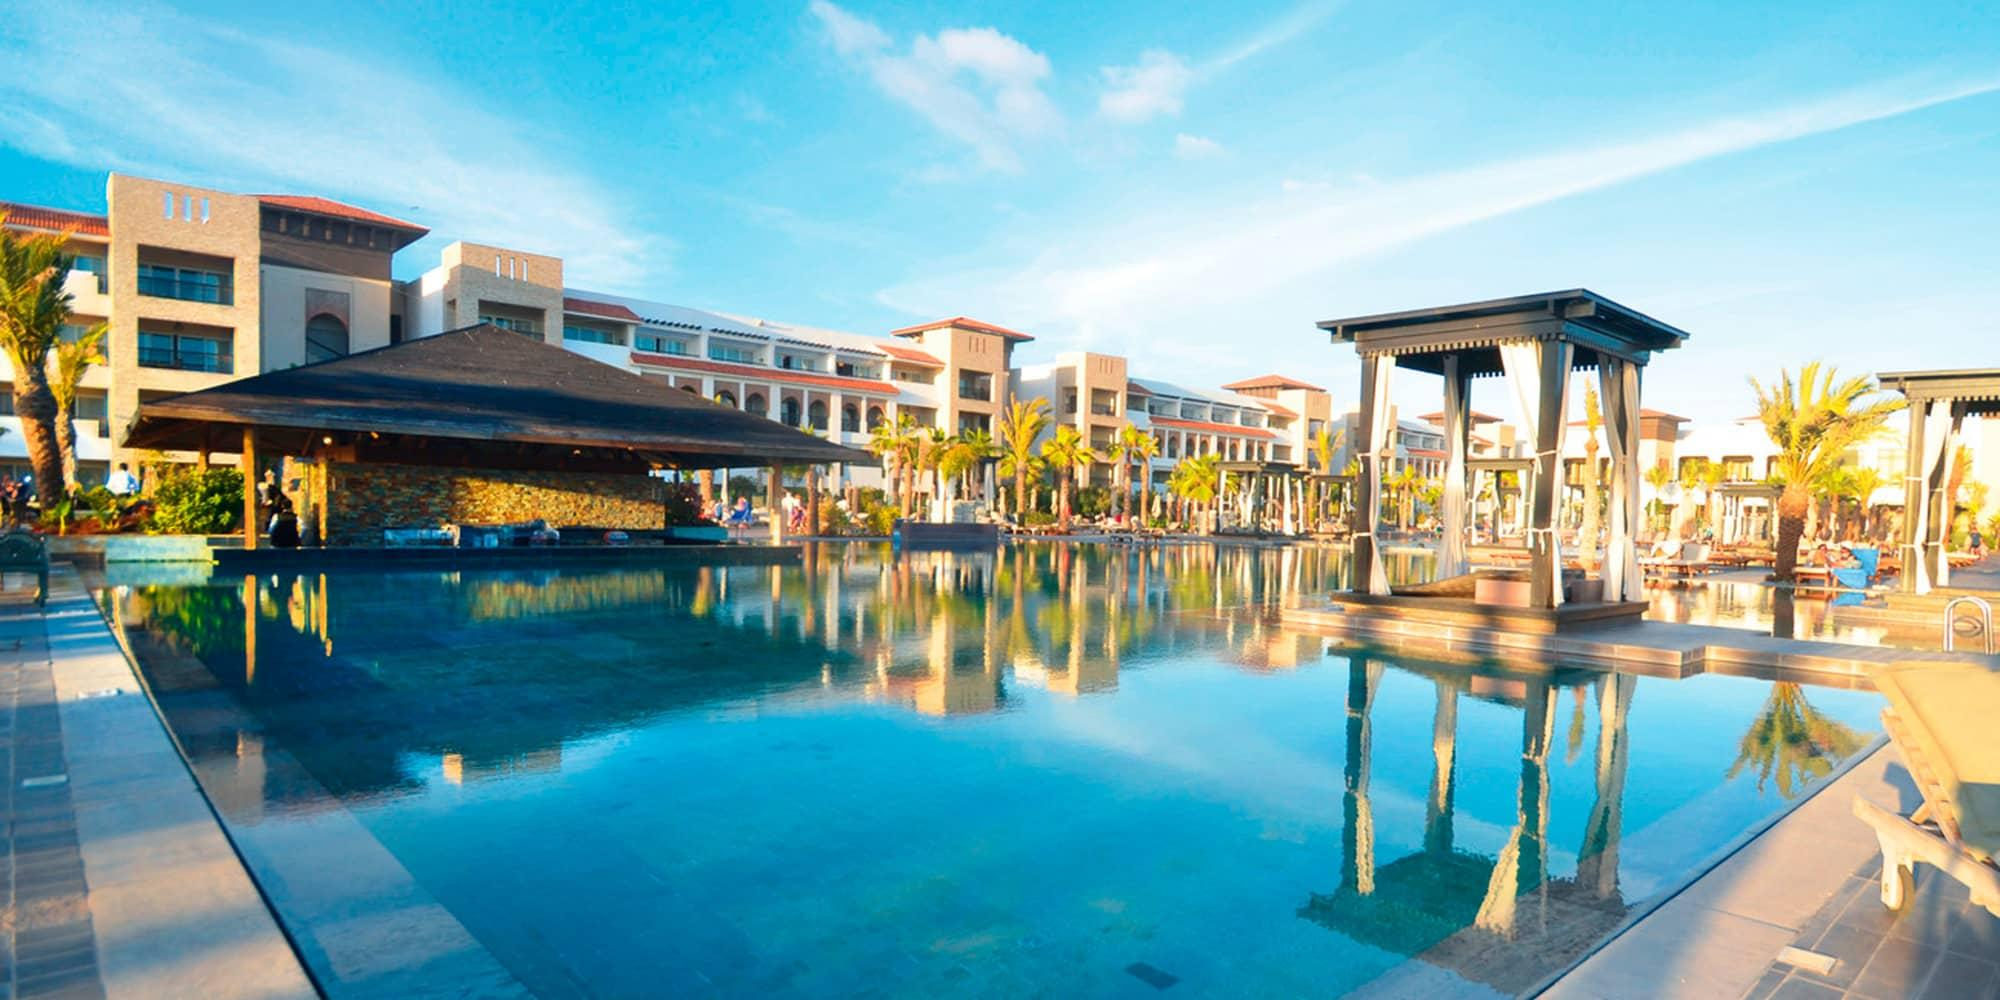 The Hotel Riu Palace Tikida Agadir's impressive main pool in incredible Morocco.